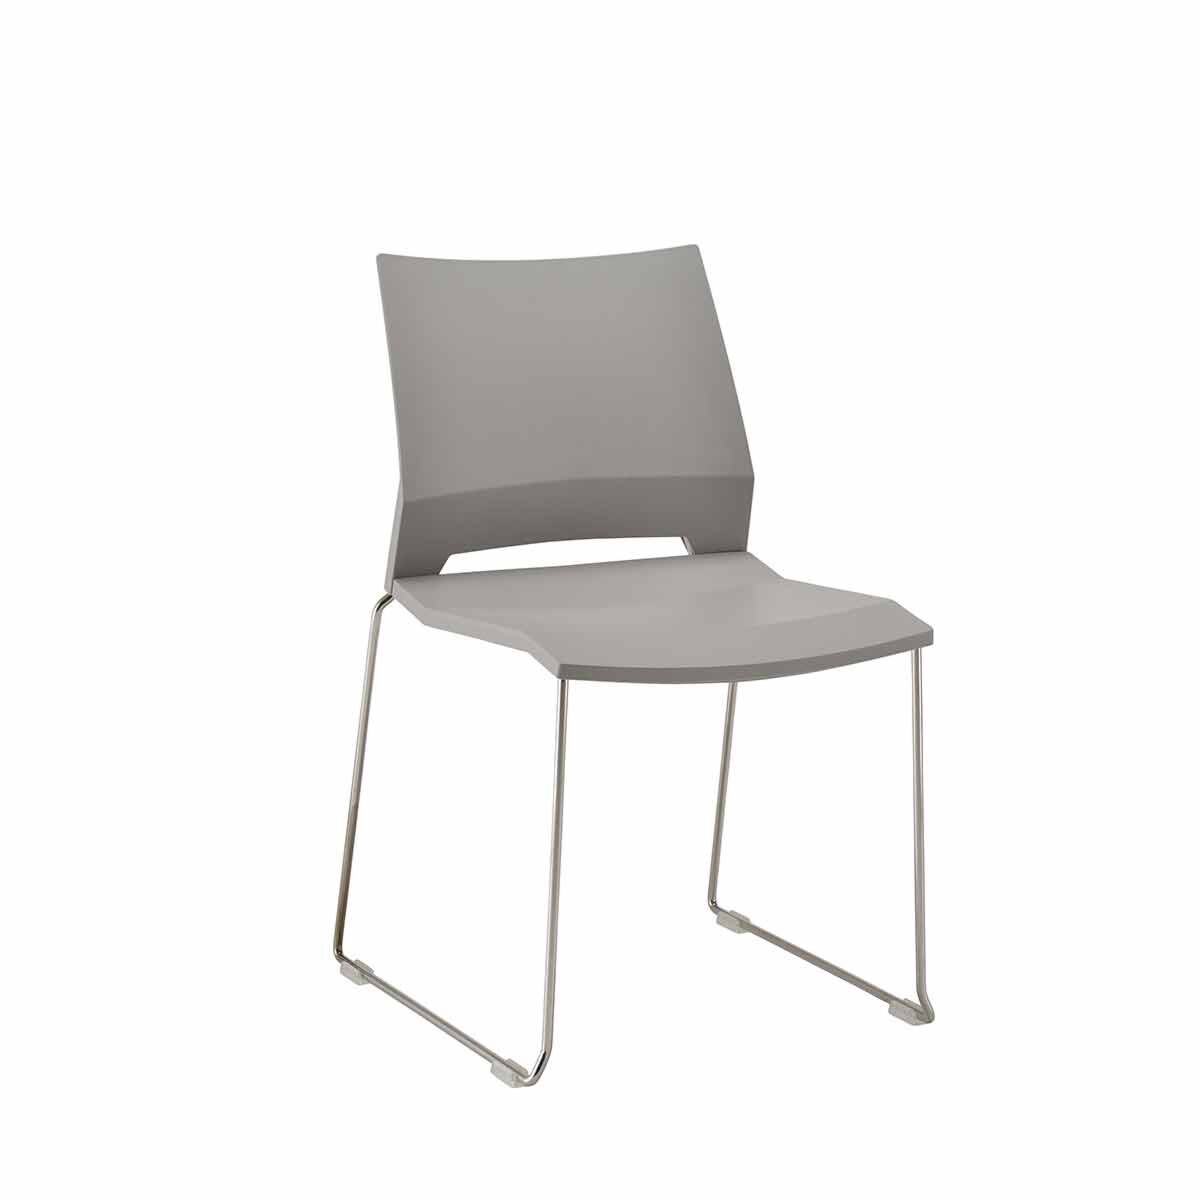 TC Office Rome Skid Side Chair Grey